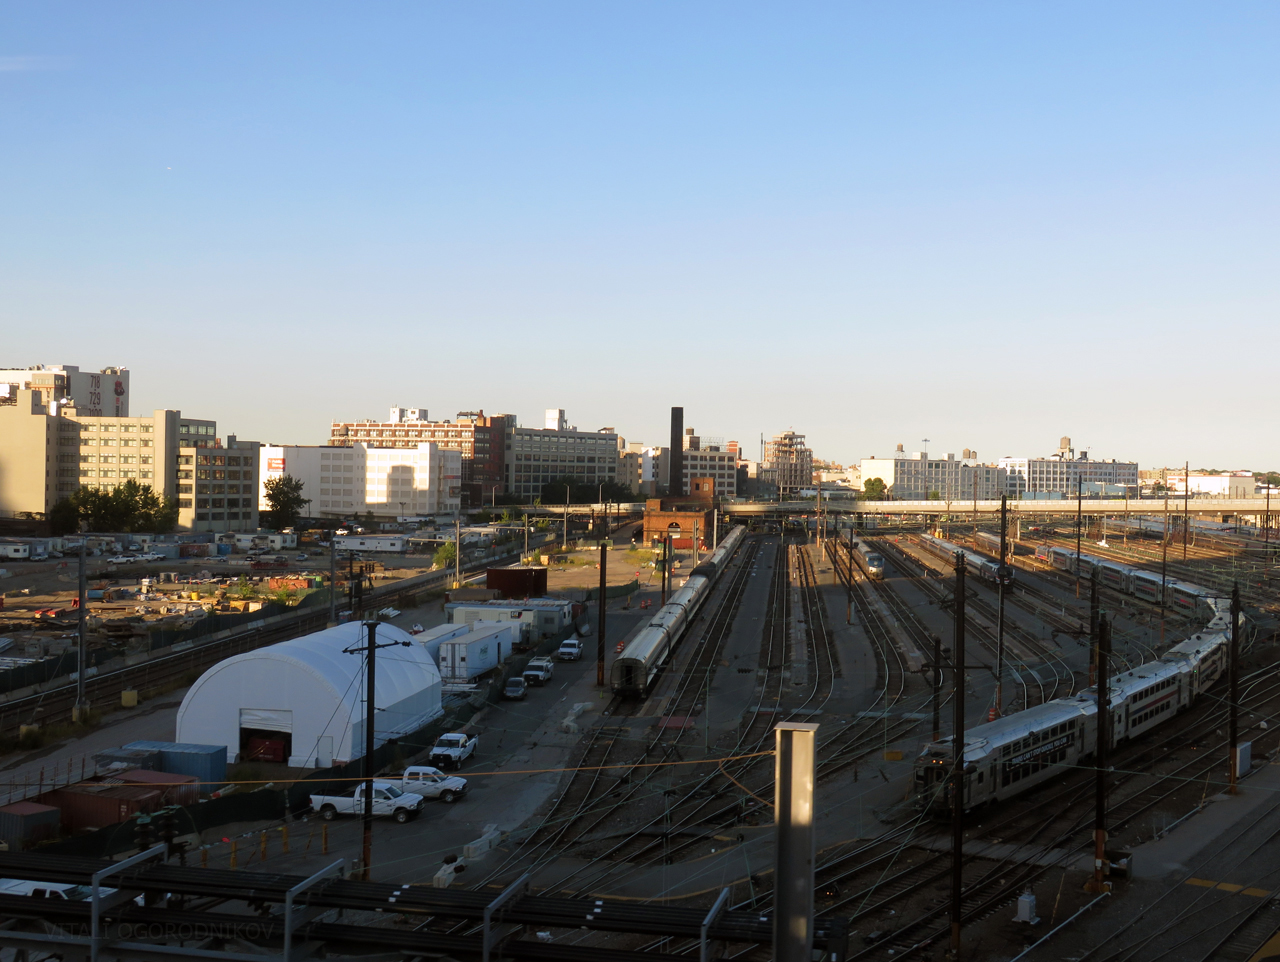 Sunnyside Railyard northeast of Queens Boulevard